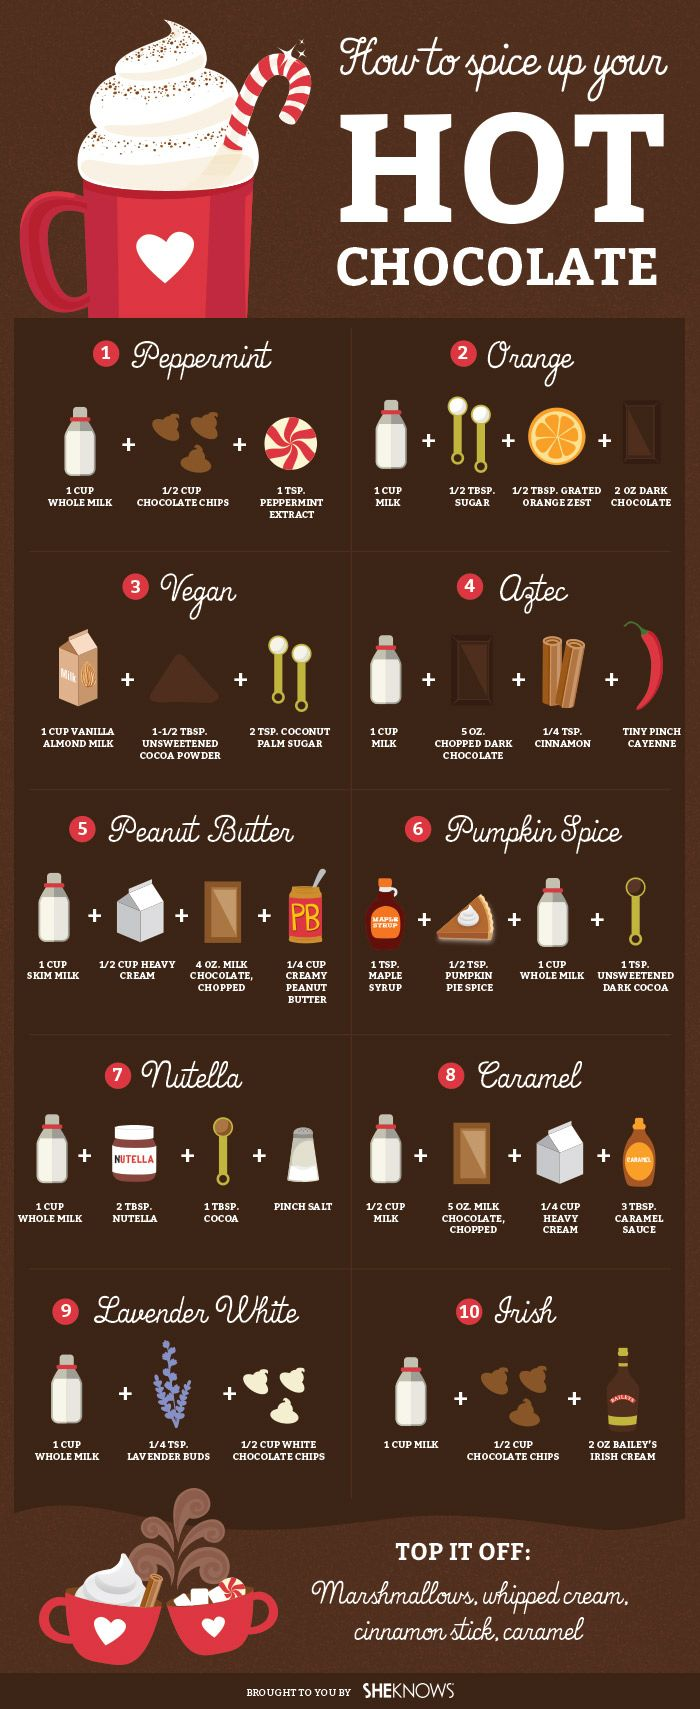 Upgrade your hot chocolate with these 18 amazing flavor combos